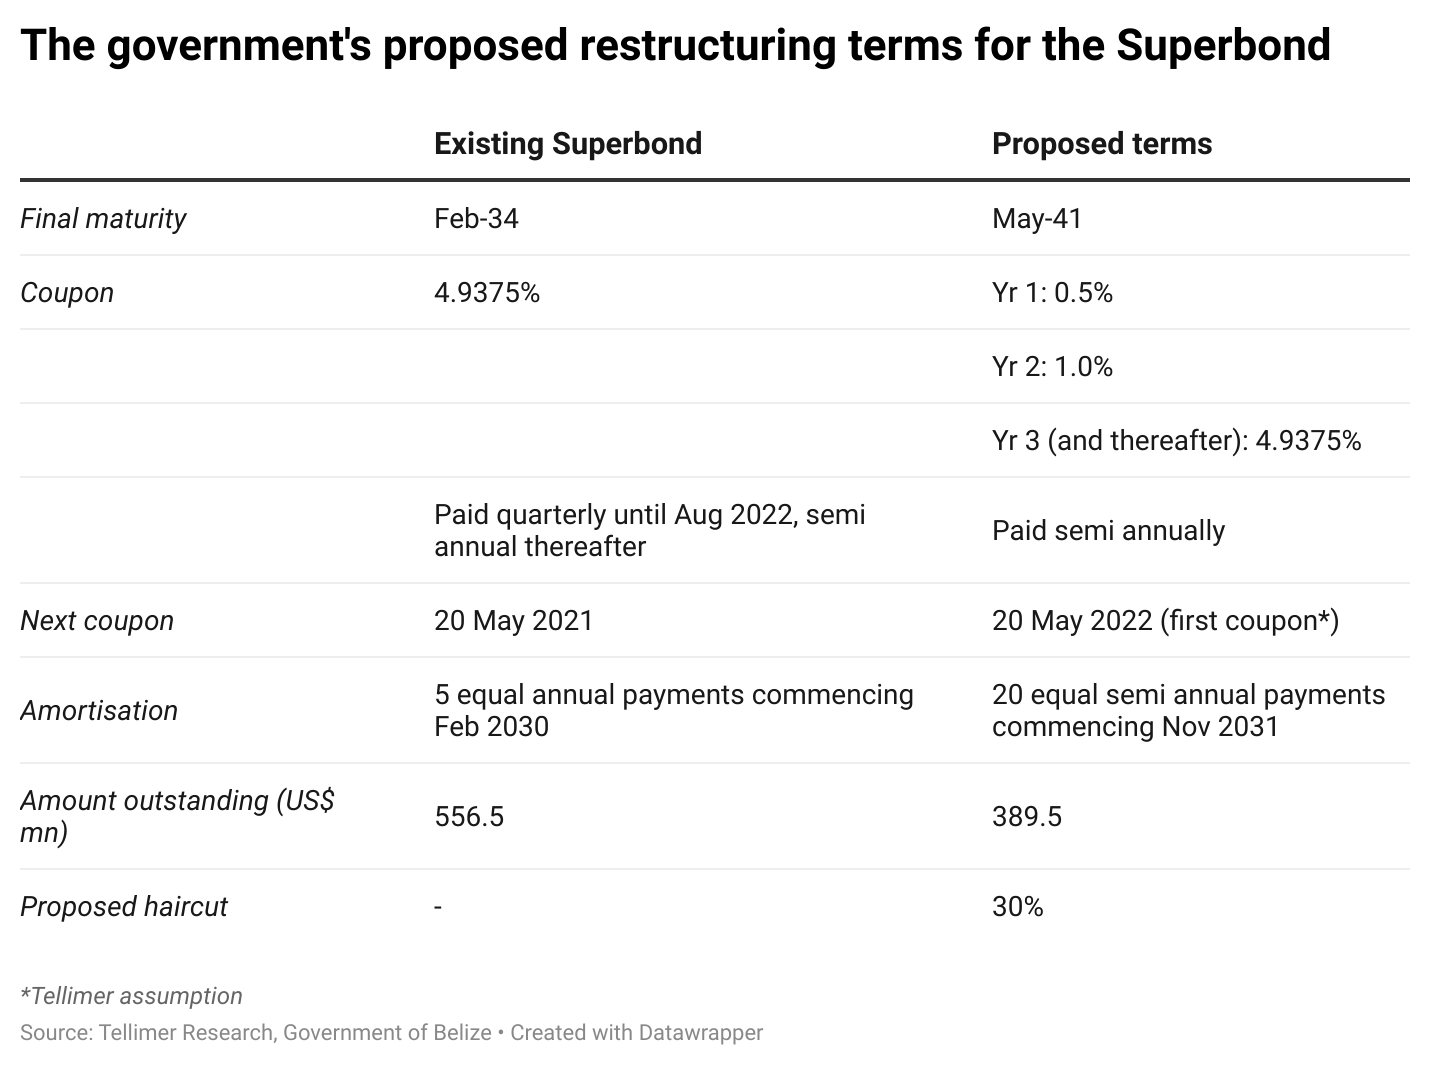 The government's proposed restructuring terms for the Superbond